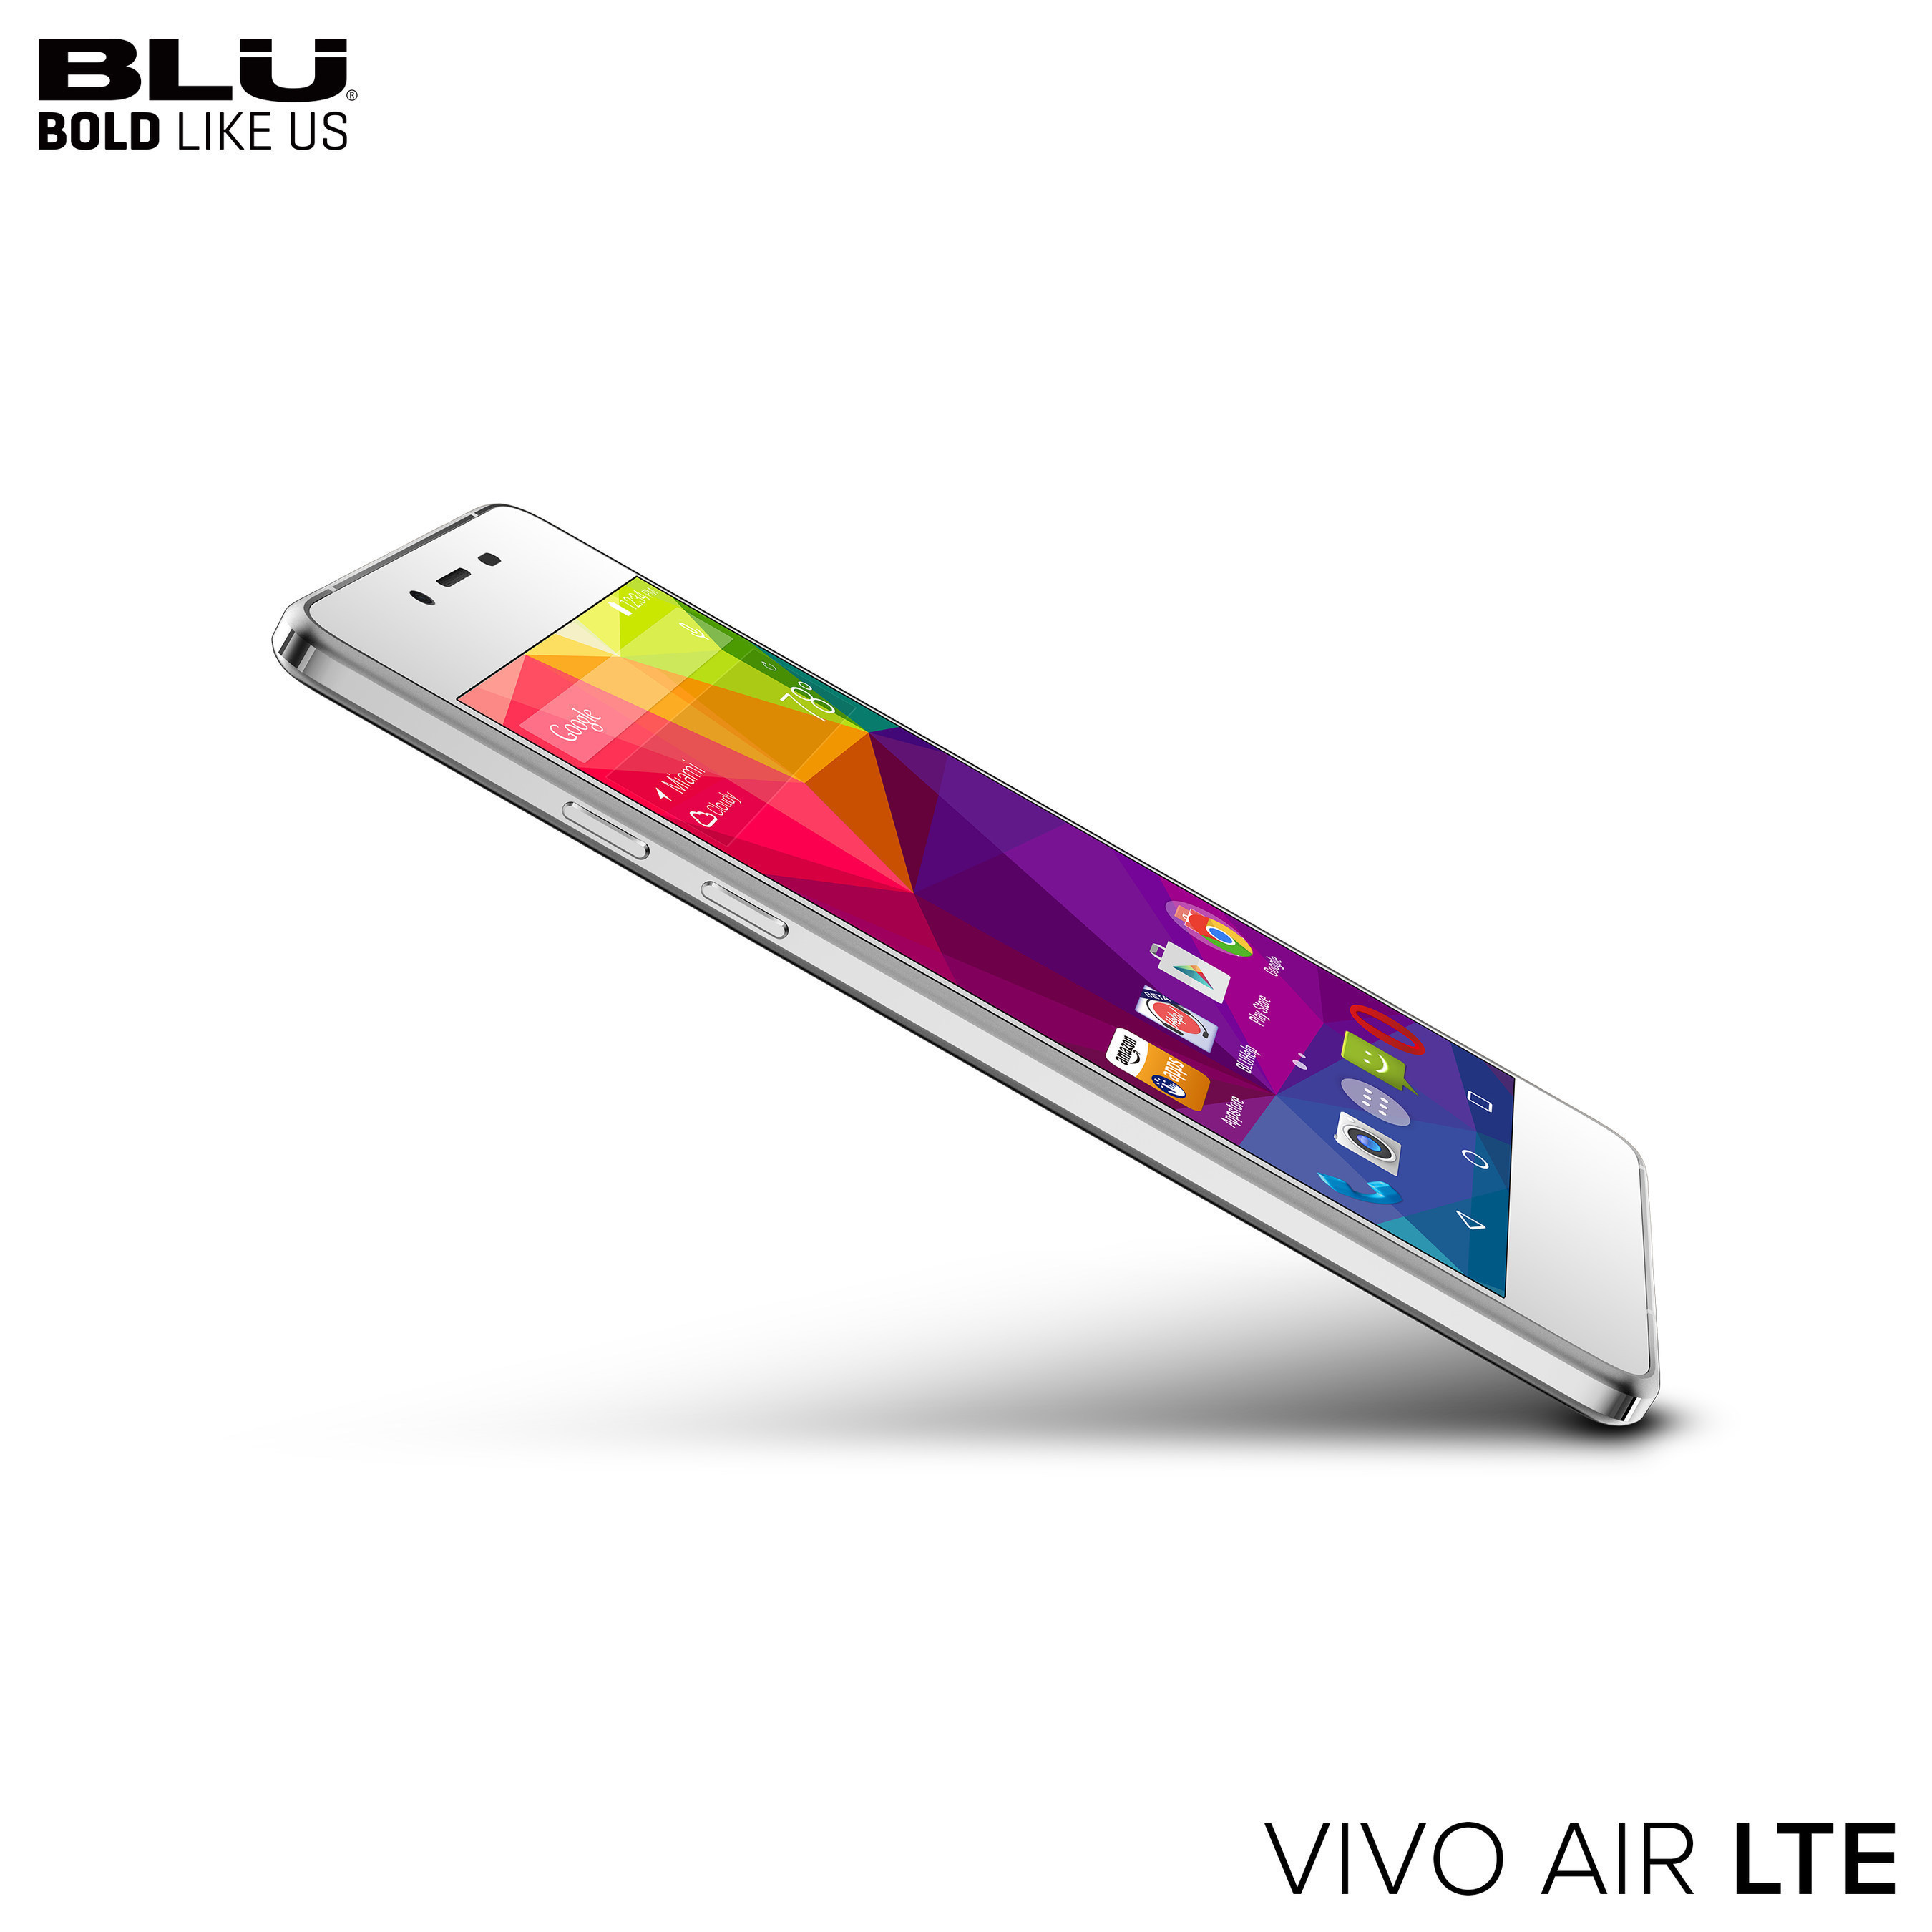 BLU Products Announces at CTIA Super Mobility in Las Vegas the Follow Up To Popular Vivo Air Series with the BLU Vivo Air LTE - America's Thinnest 4G LTE Smartphone